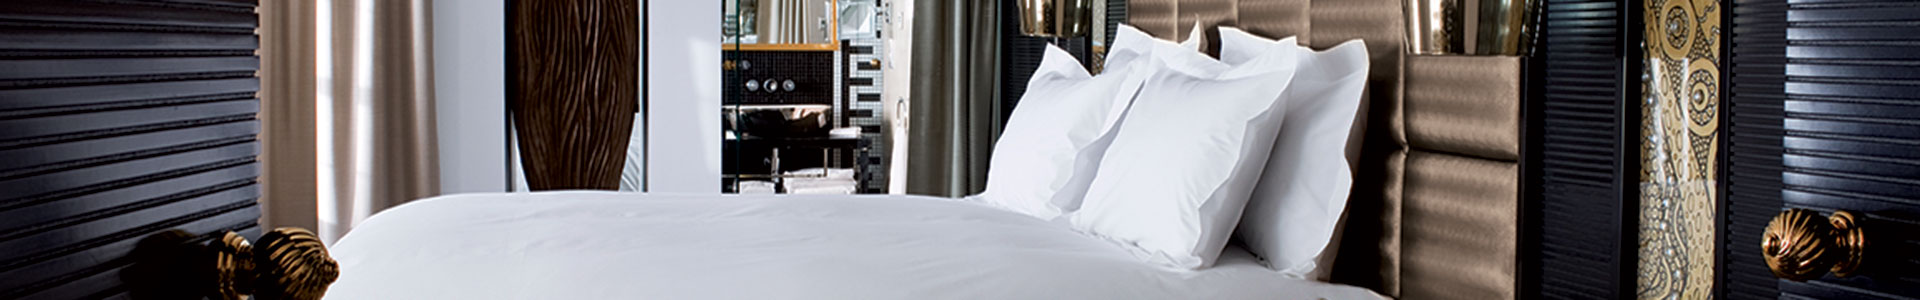 sofitel collection h tel achat draps luxe coton hotel sofitel. Black Bedroom Furniture Sets. Home Design Ideas